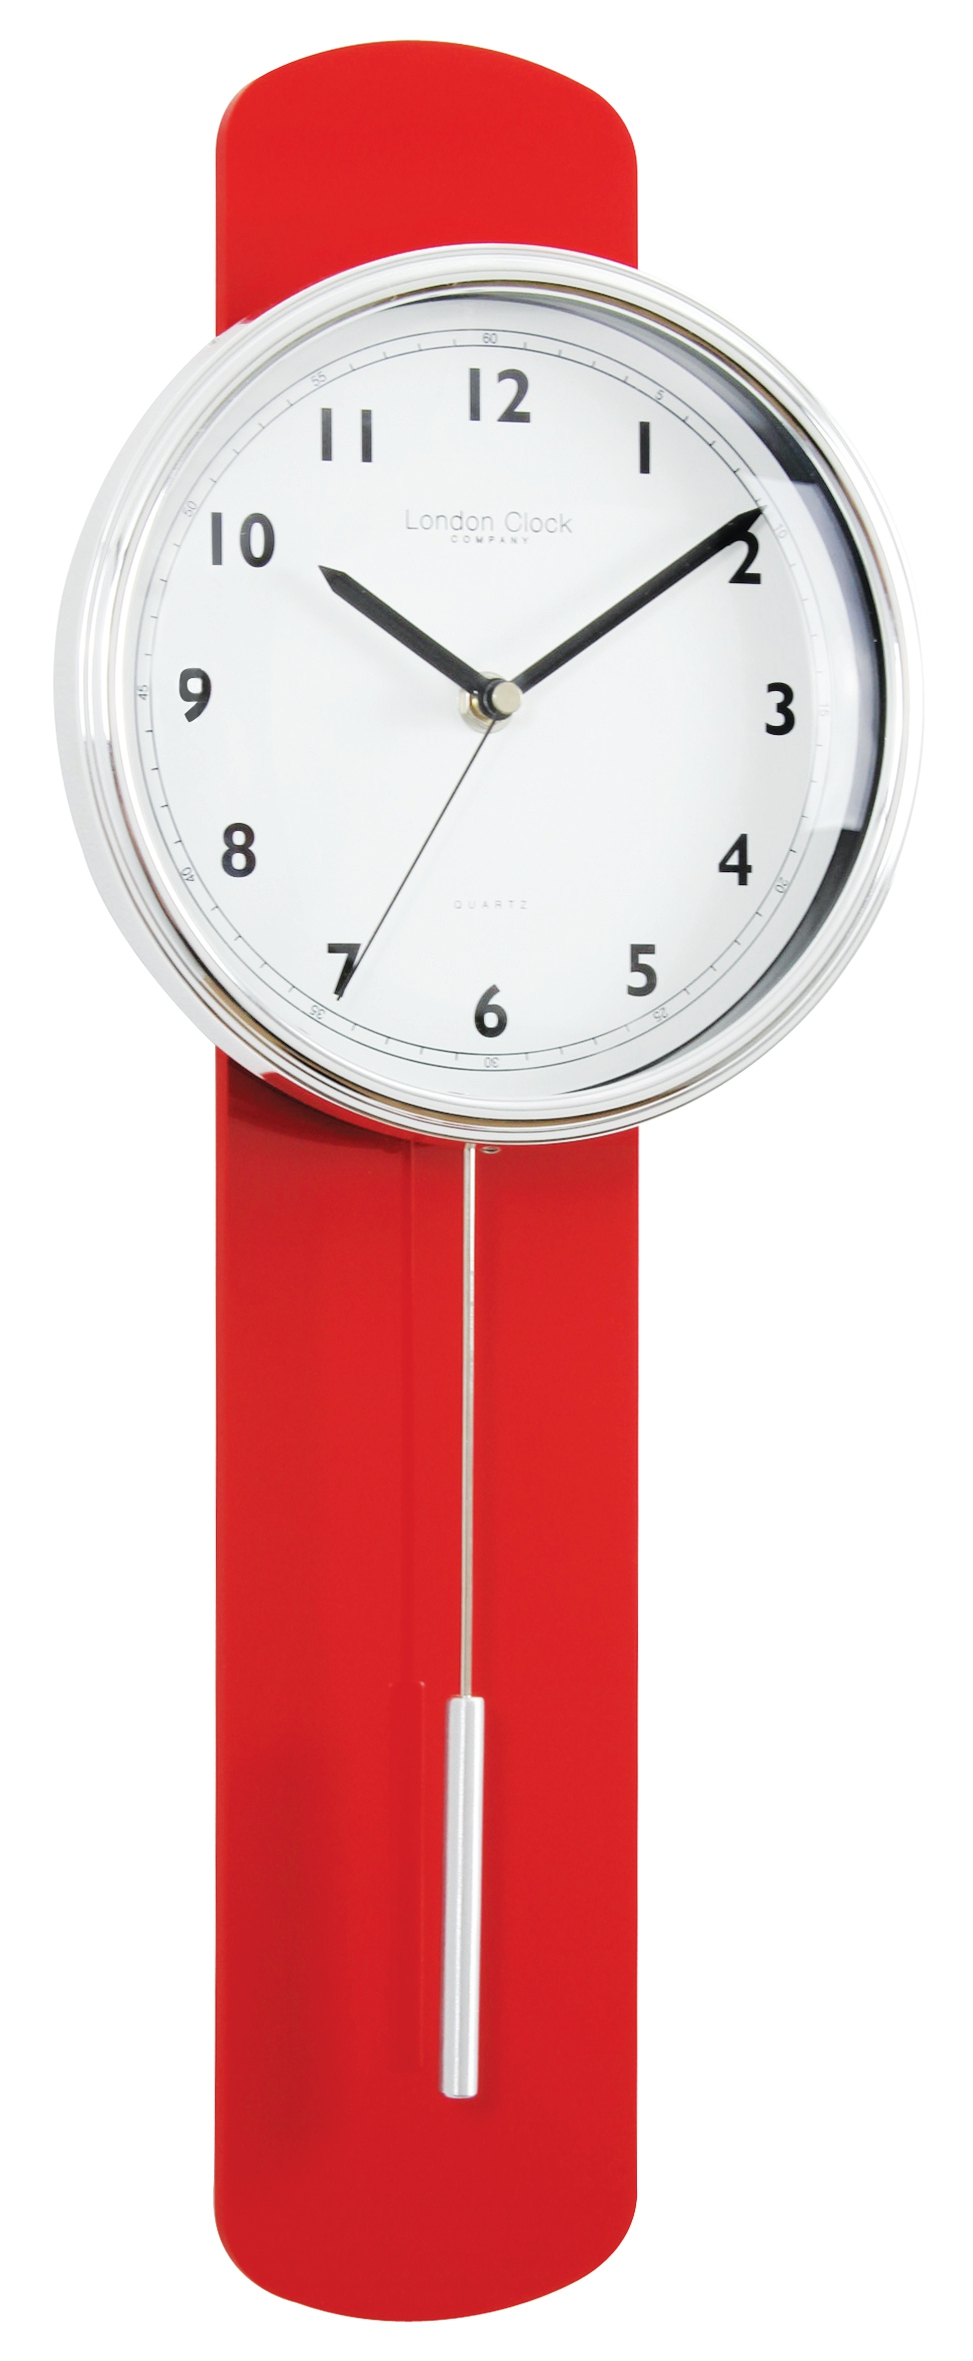 London Clock Company Red Finish Contemporary Pendulum Wall Clock Discount Homeware And Giftware